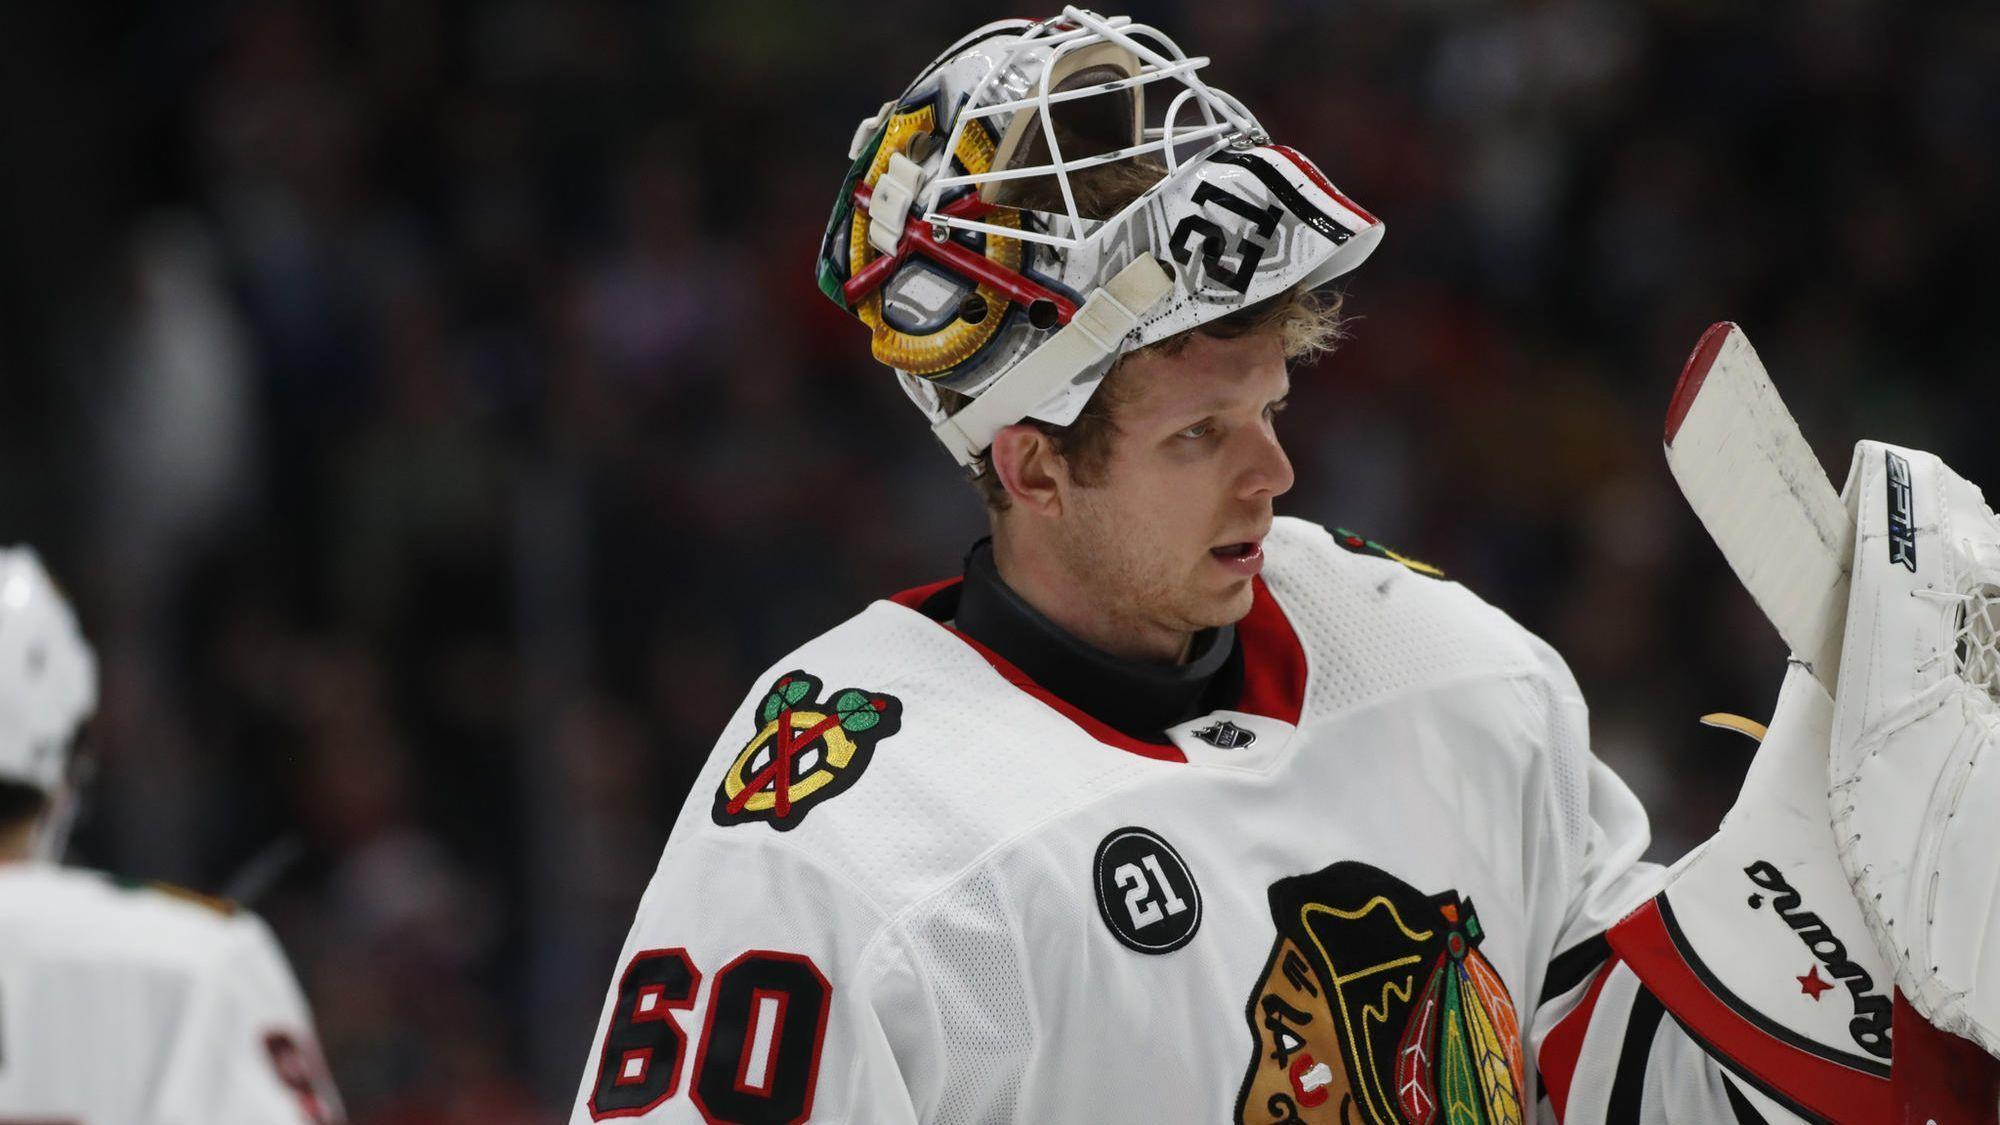 Rookie goalie Collin Delia has earned the right to start the Winter Classic  for the Blackhawks - Chicago Tribune 84a4c6290